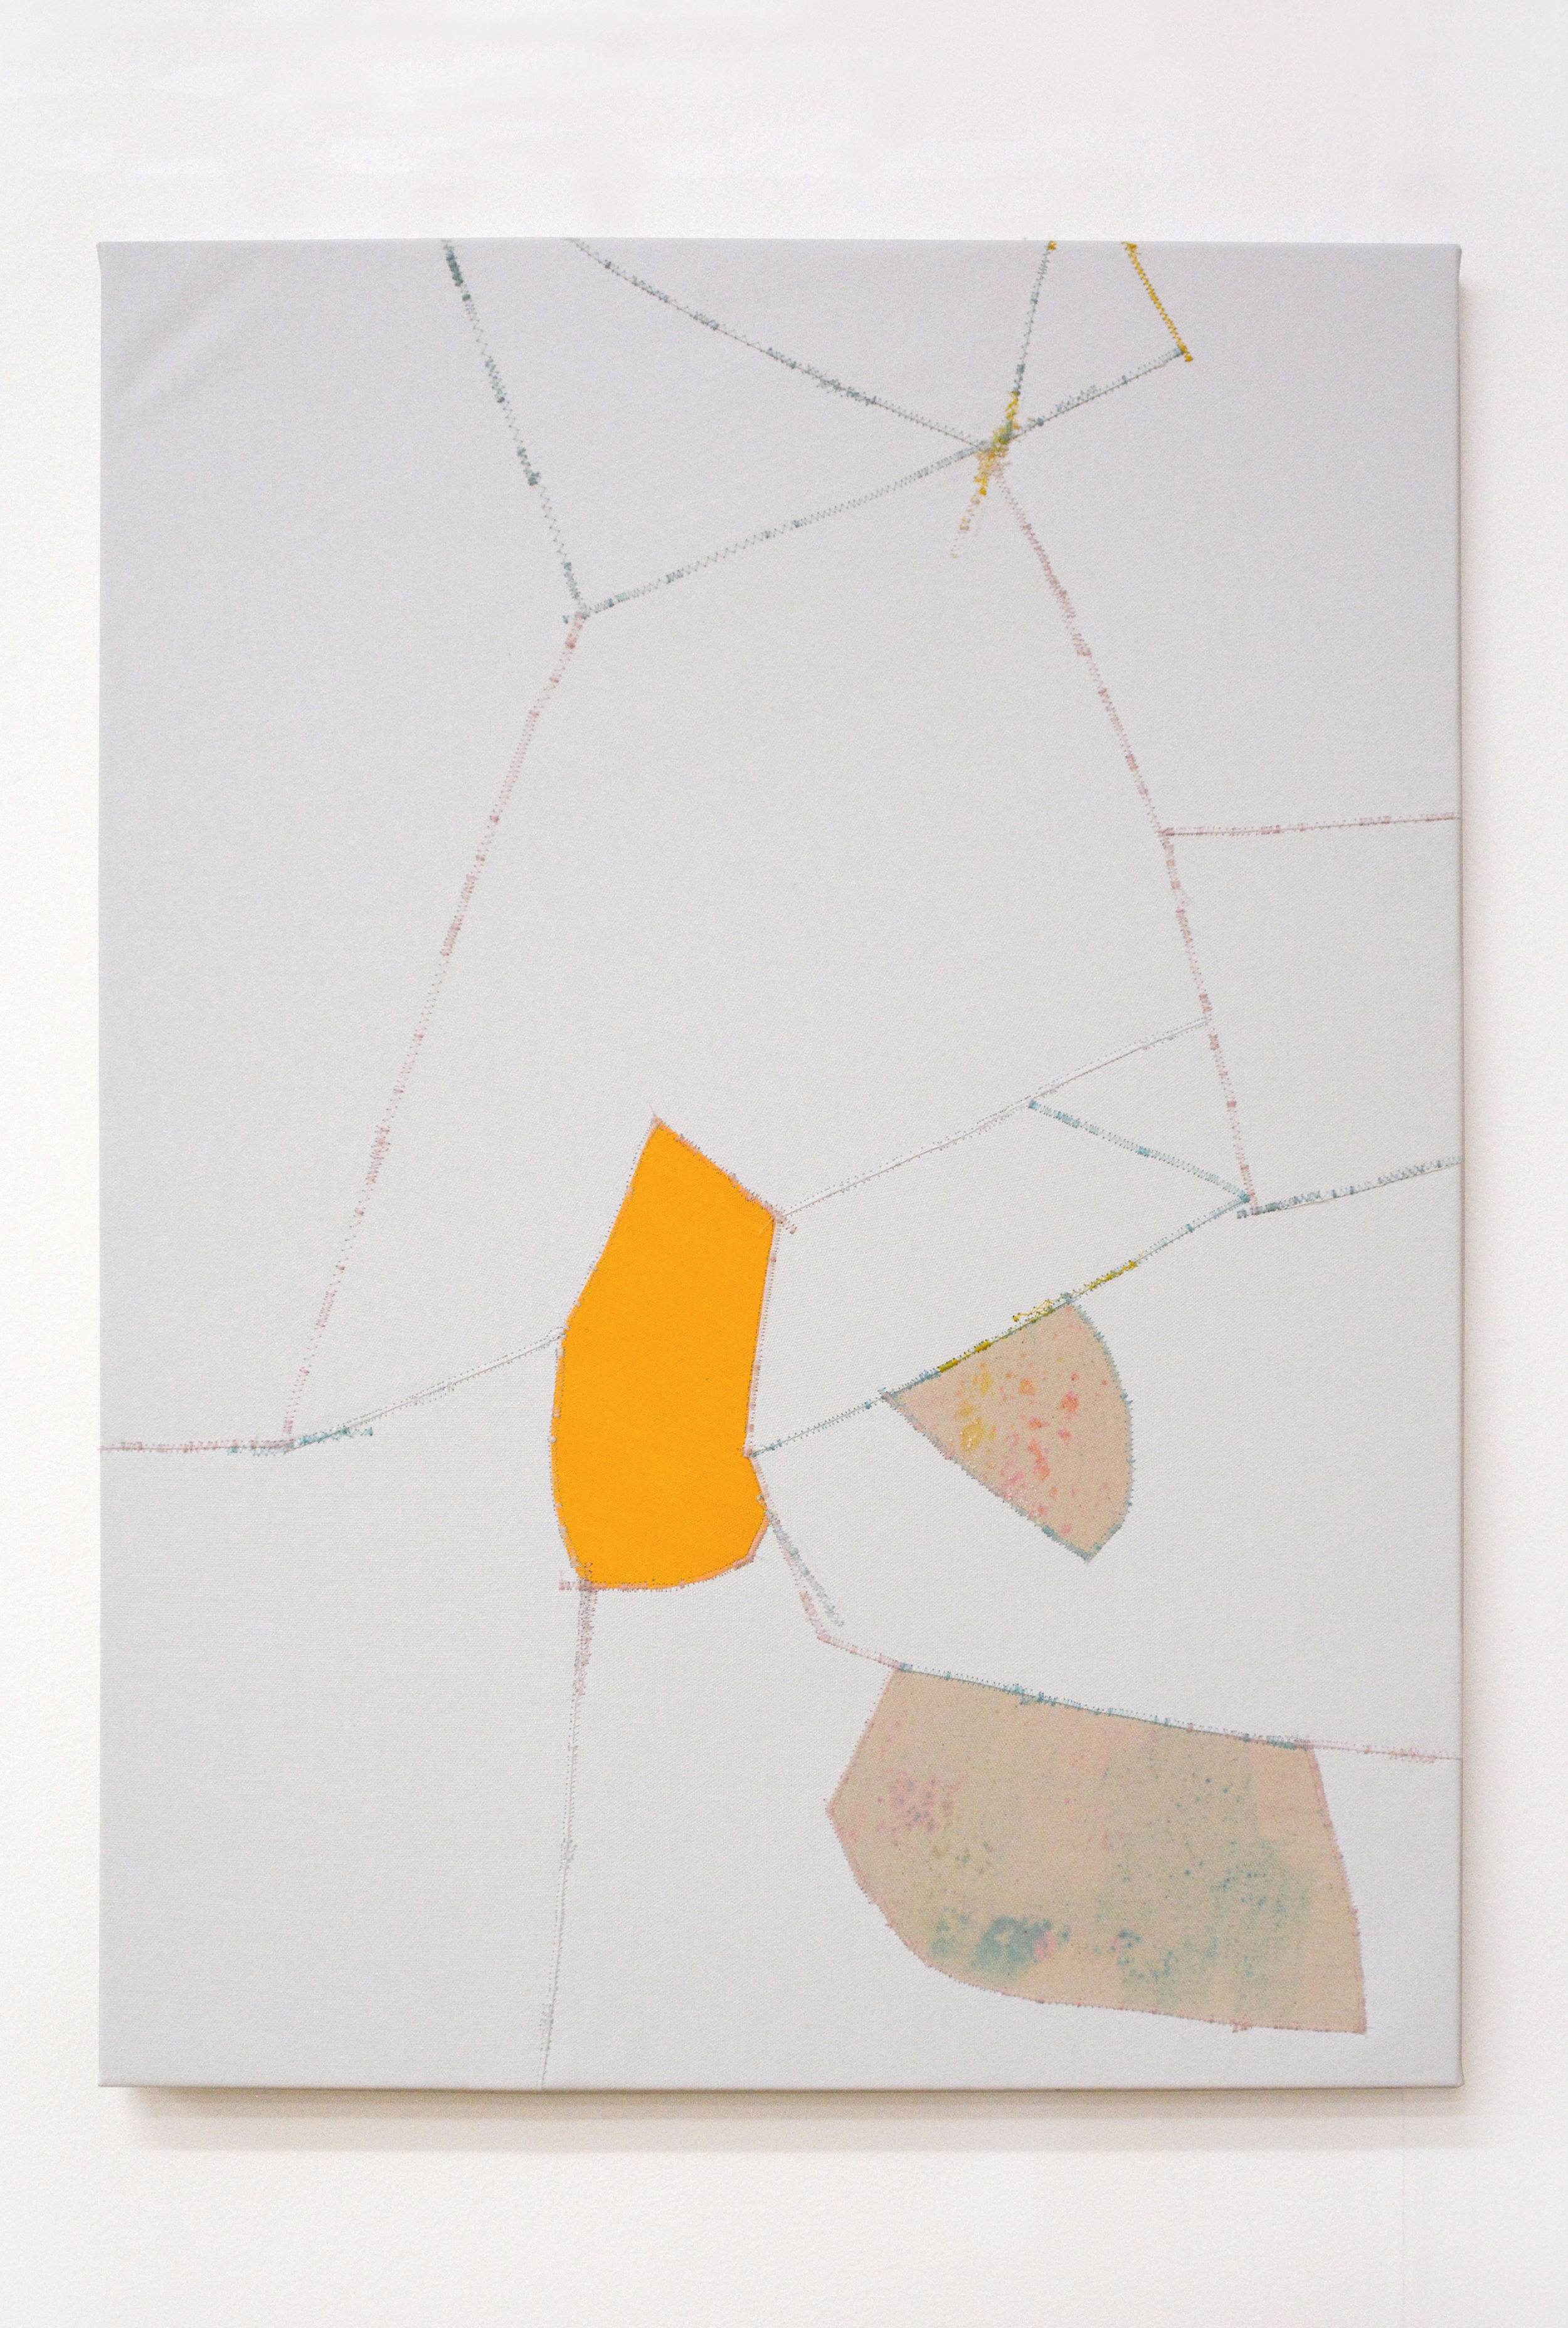 Crumble , oil and thread on canvas, 56 x 76 cm, 2016  .